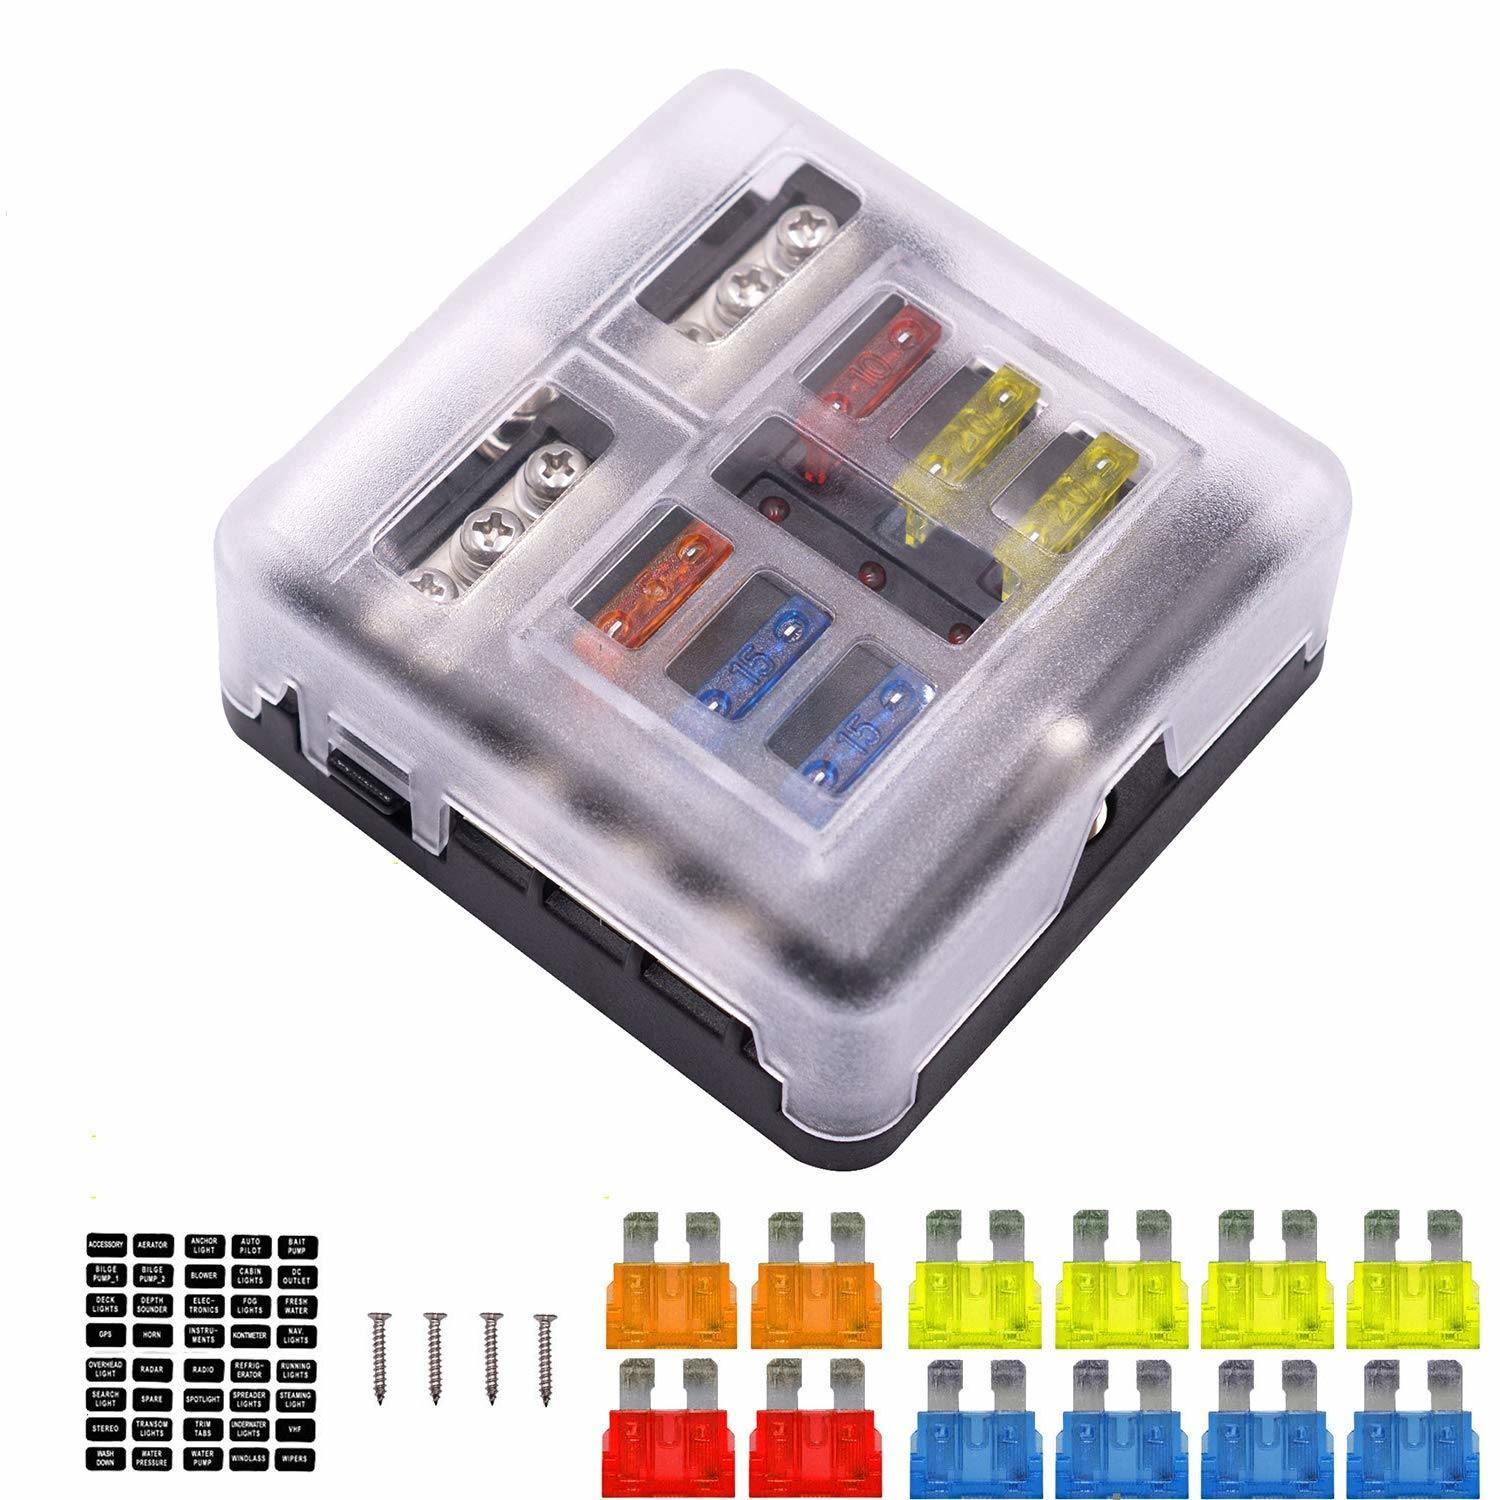 hight resolution of 6 way fuse box blade fuse block holder screw nut terminal w negative bus led indicator waterproof cover for automotive car marine boat